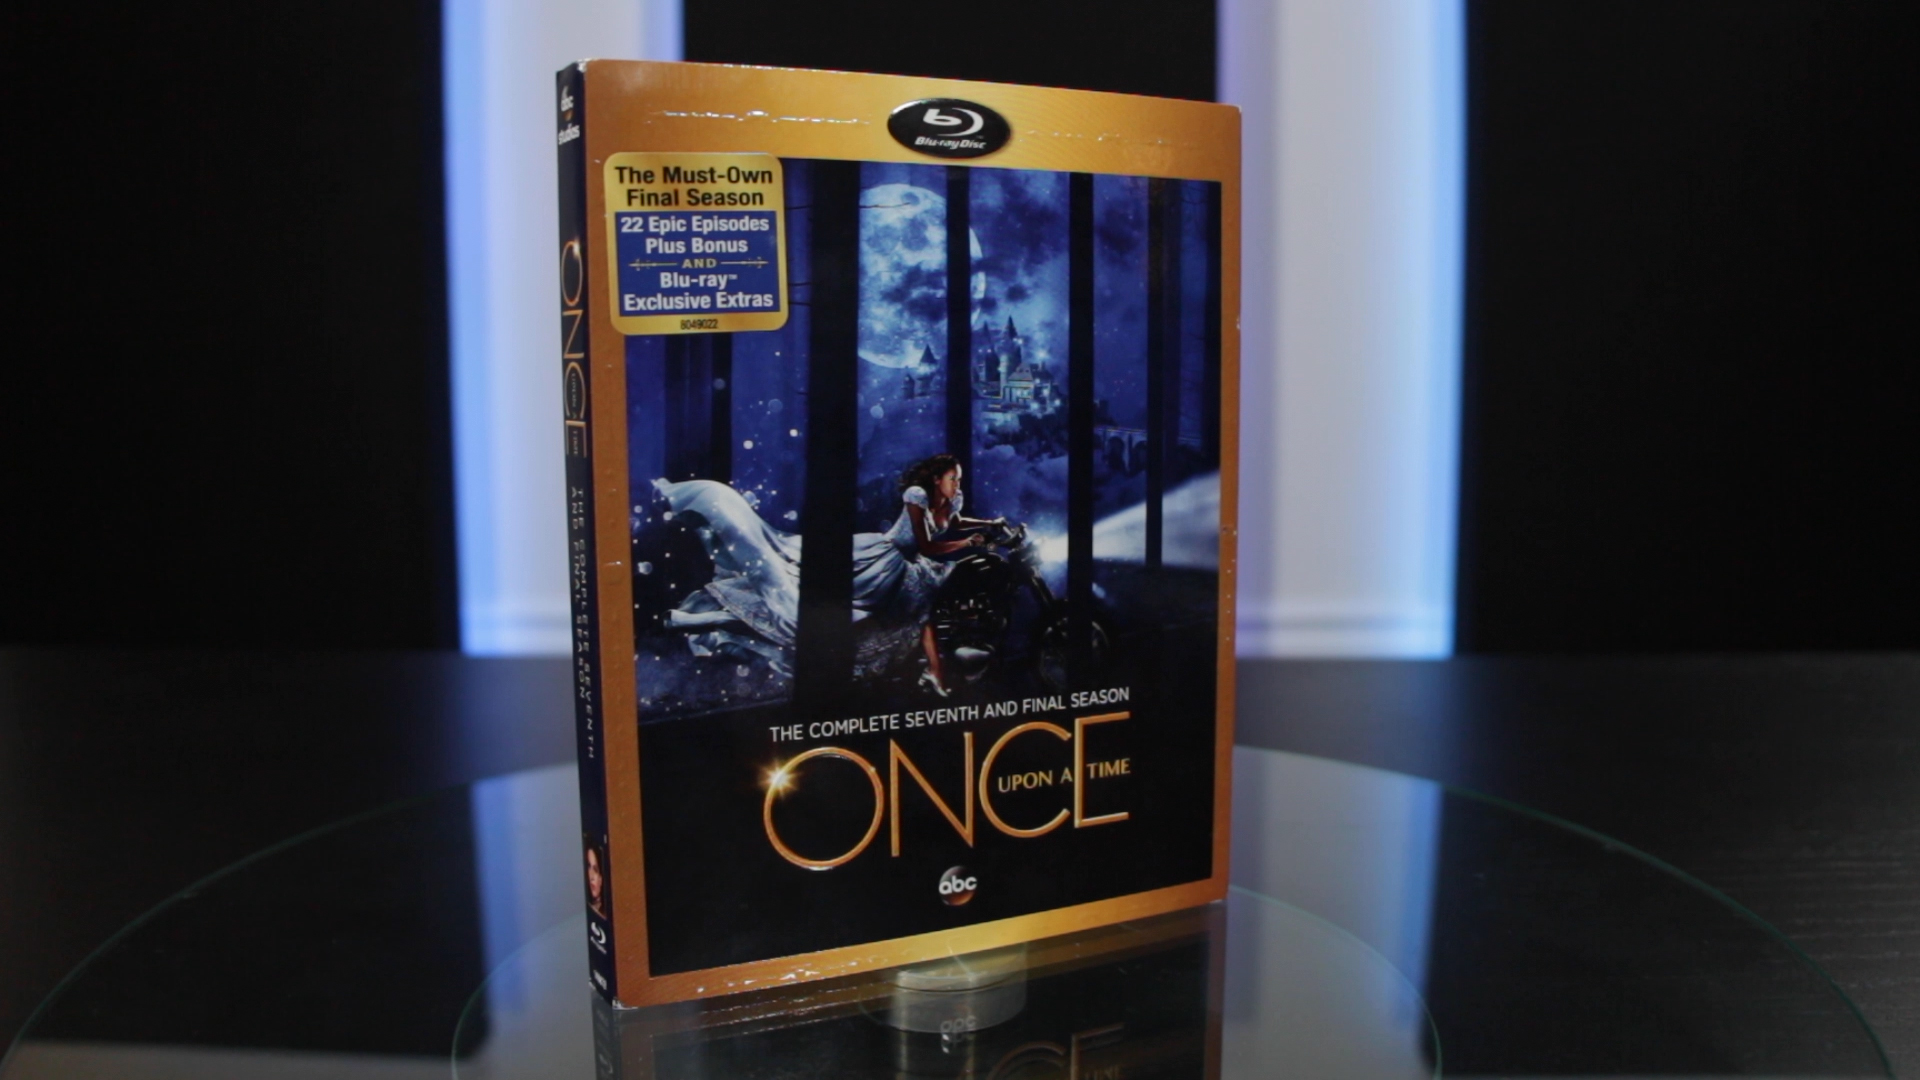 See what's inside the complete seventh and final season #OnceUponaTime Blu-Ray and DVD!